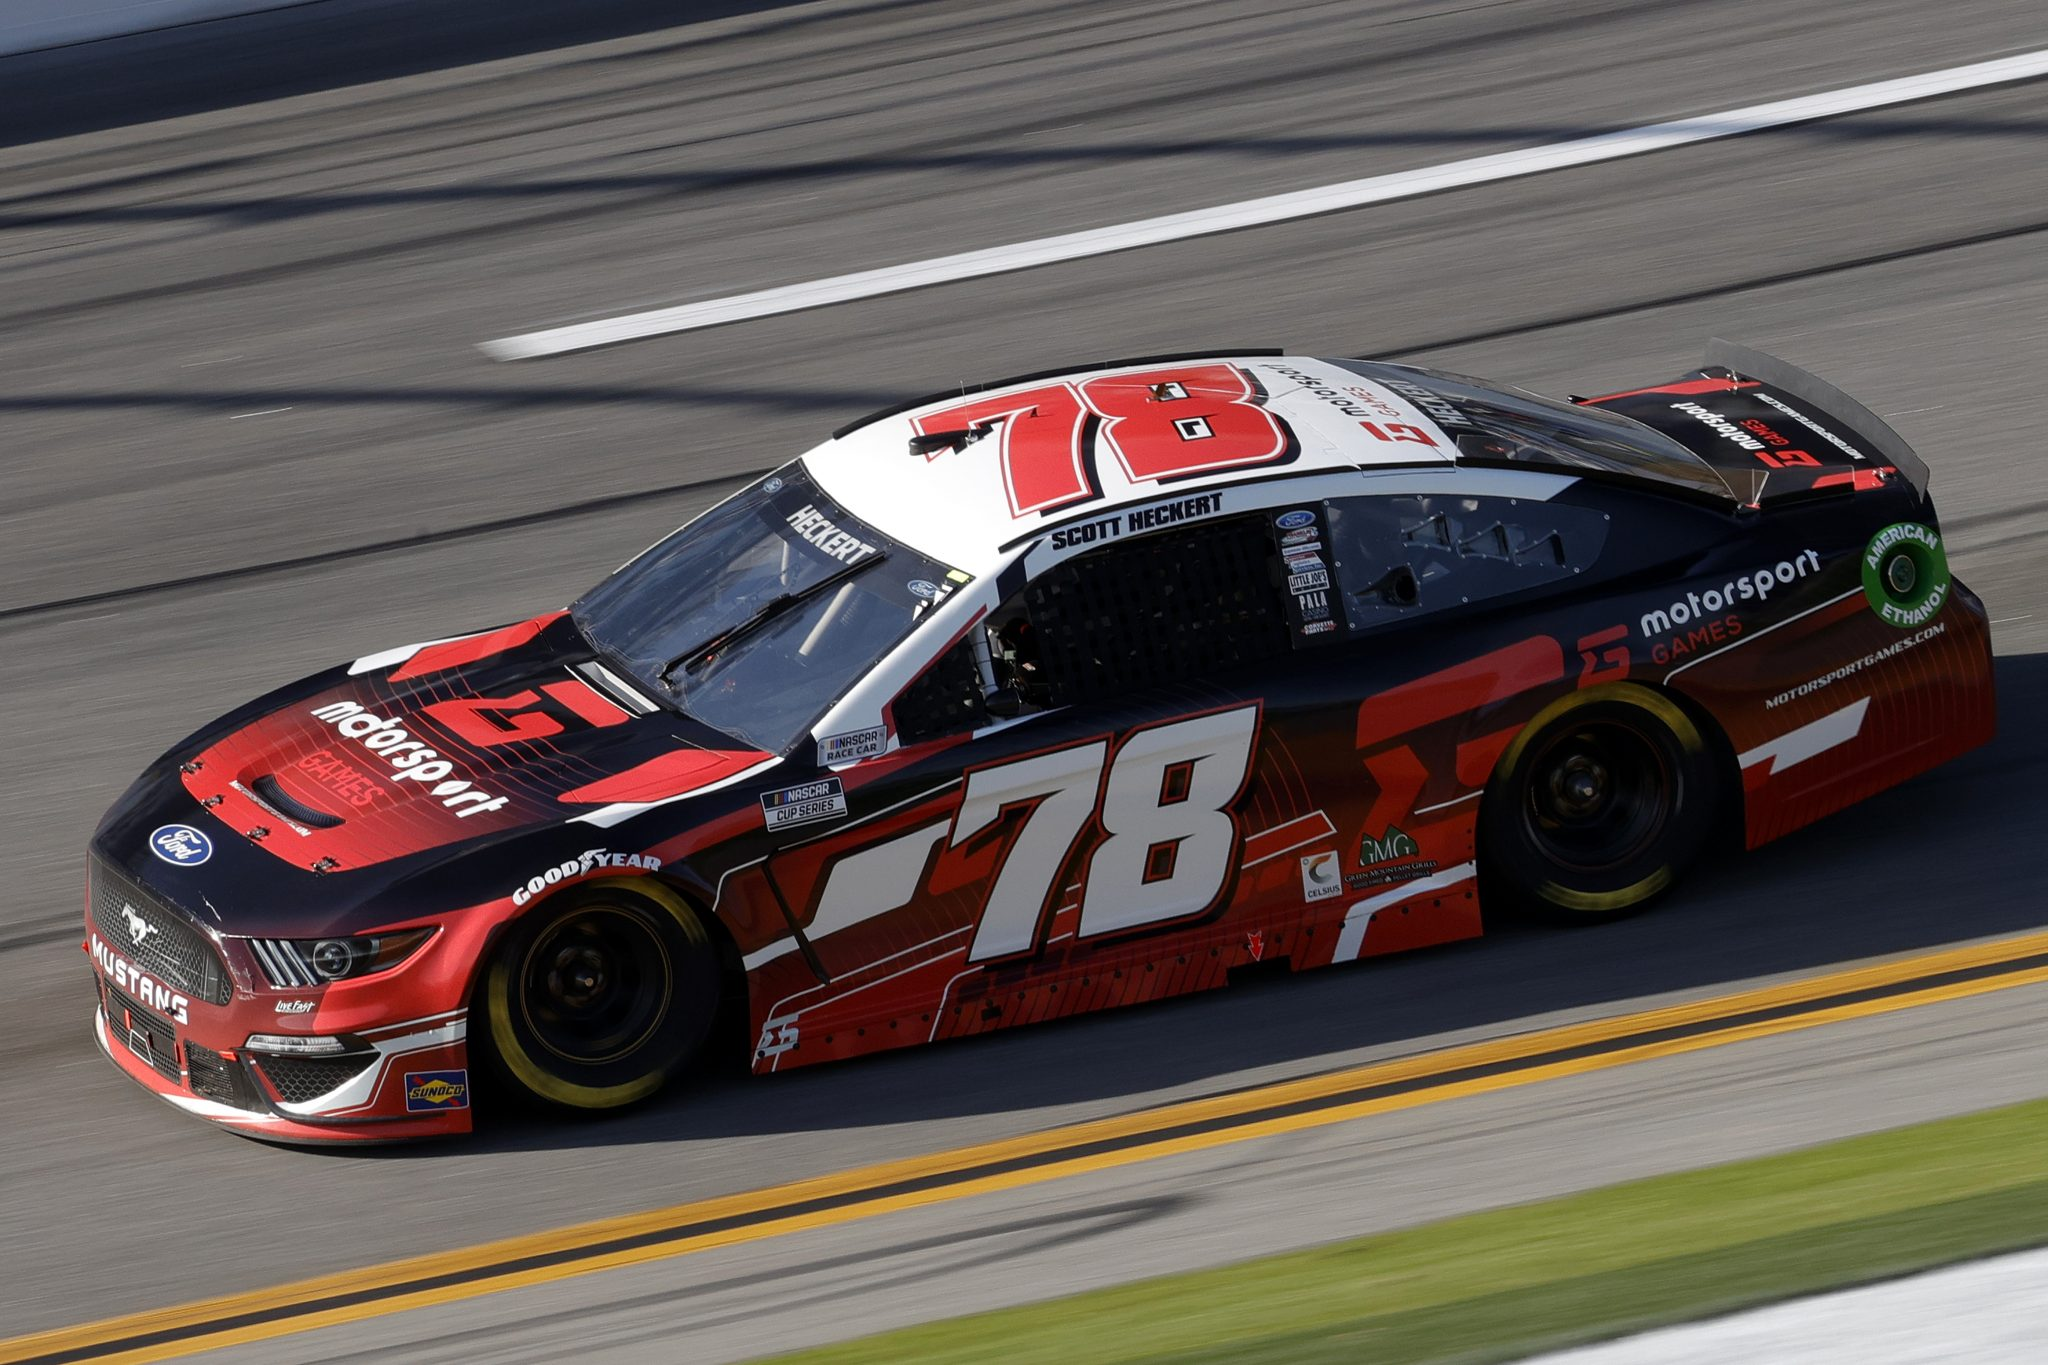 DAYTONA BEACH, FLORIDA - FEBRUARY 21: Scott Heckert, driver of the #78 Ford, drives during the NASCAR Cup Series O'Reilly Auto Parts 253 at Daytona International Speedway on February 21, 2021 in Daytona Beach, Florida. (Photo by Chris Graythen/Getty Images) | Getty Images